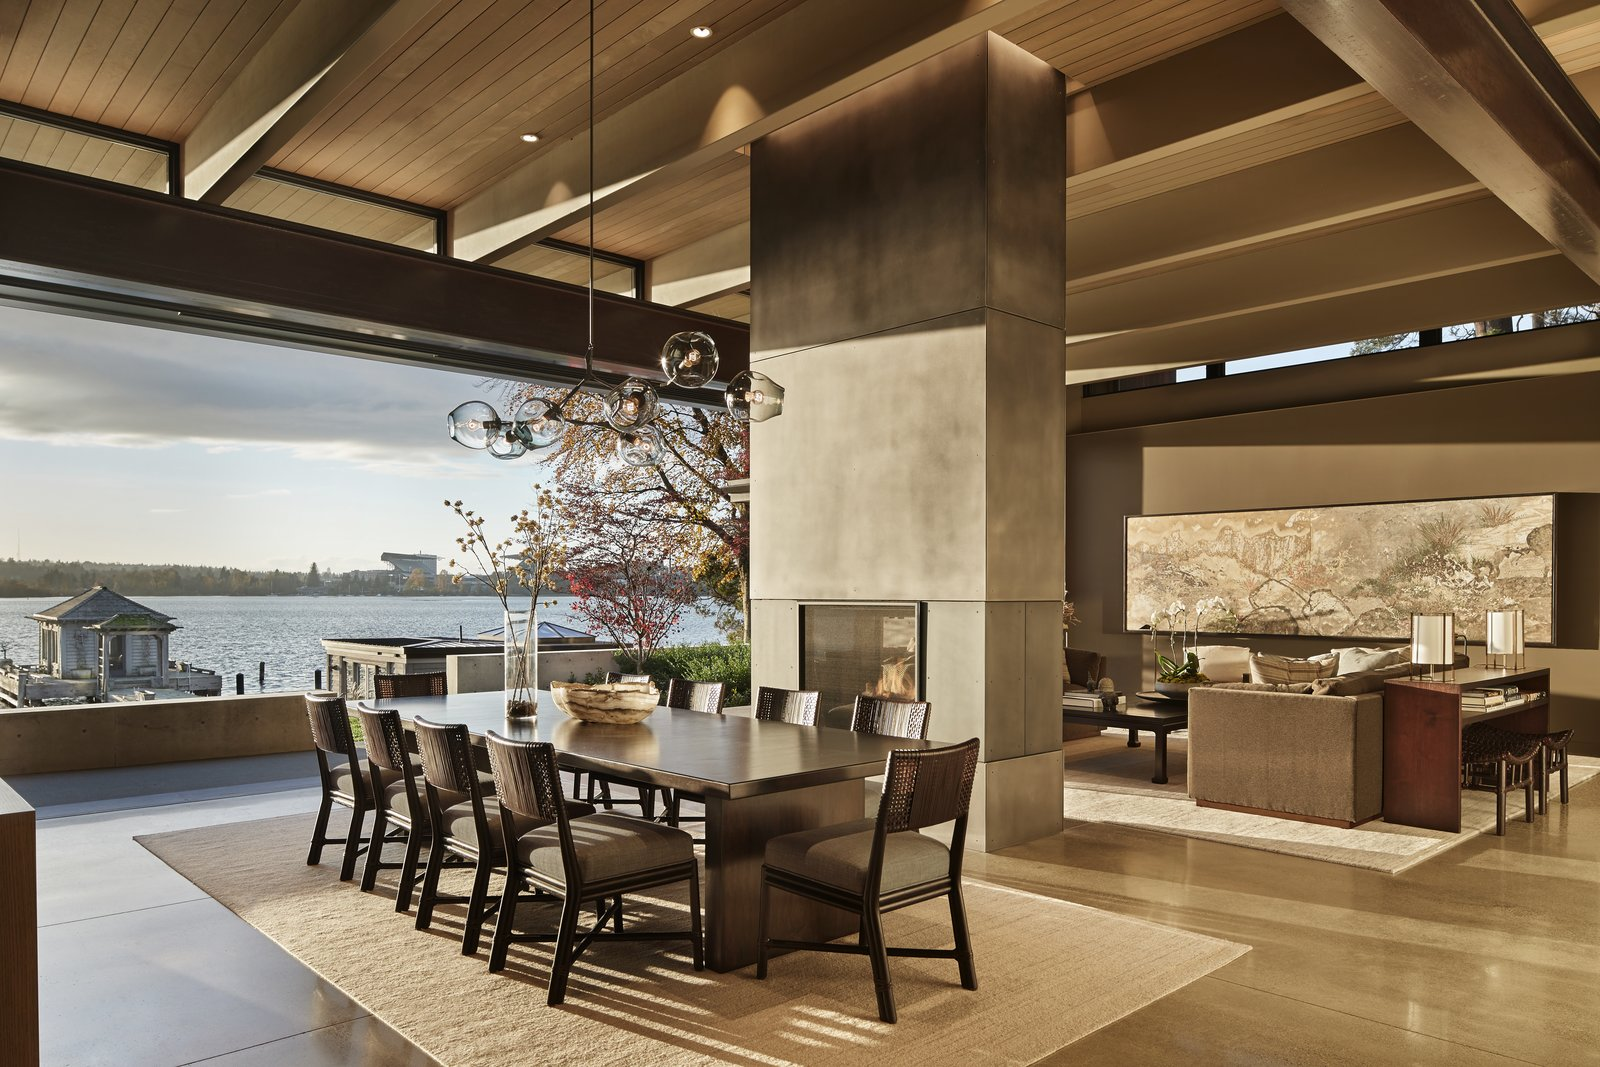 Great Room with steel-clad fireplace, concrete floors and wood beams Tagged: Living Room, End Tables, Sofa, Ceiling Lighting, Concrete Floor, Two-Sided Fireplace, Chair, and Console Tables.  Best Photos from Union Bay Residence